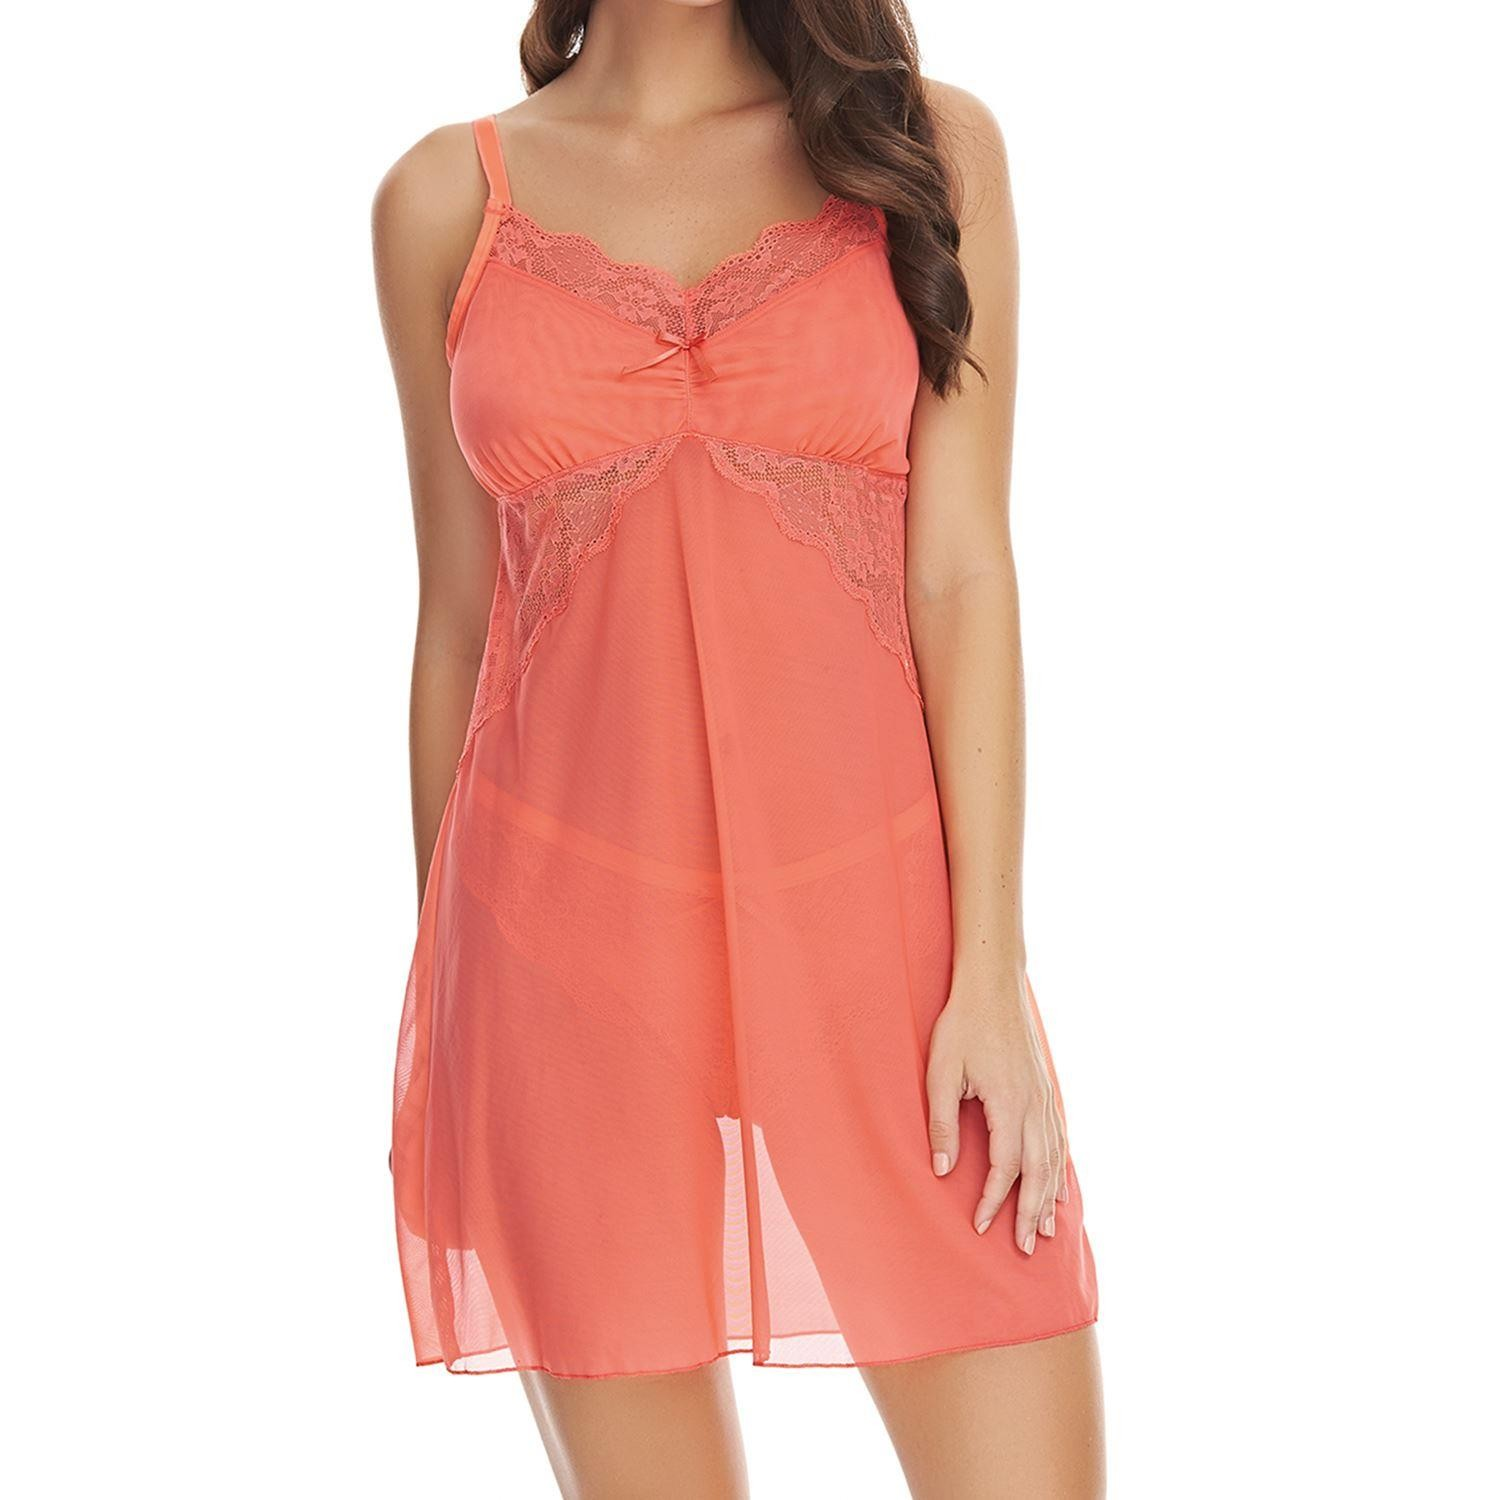 Freya Fancies Chemise - Hot Coral